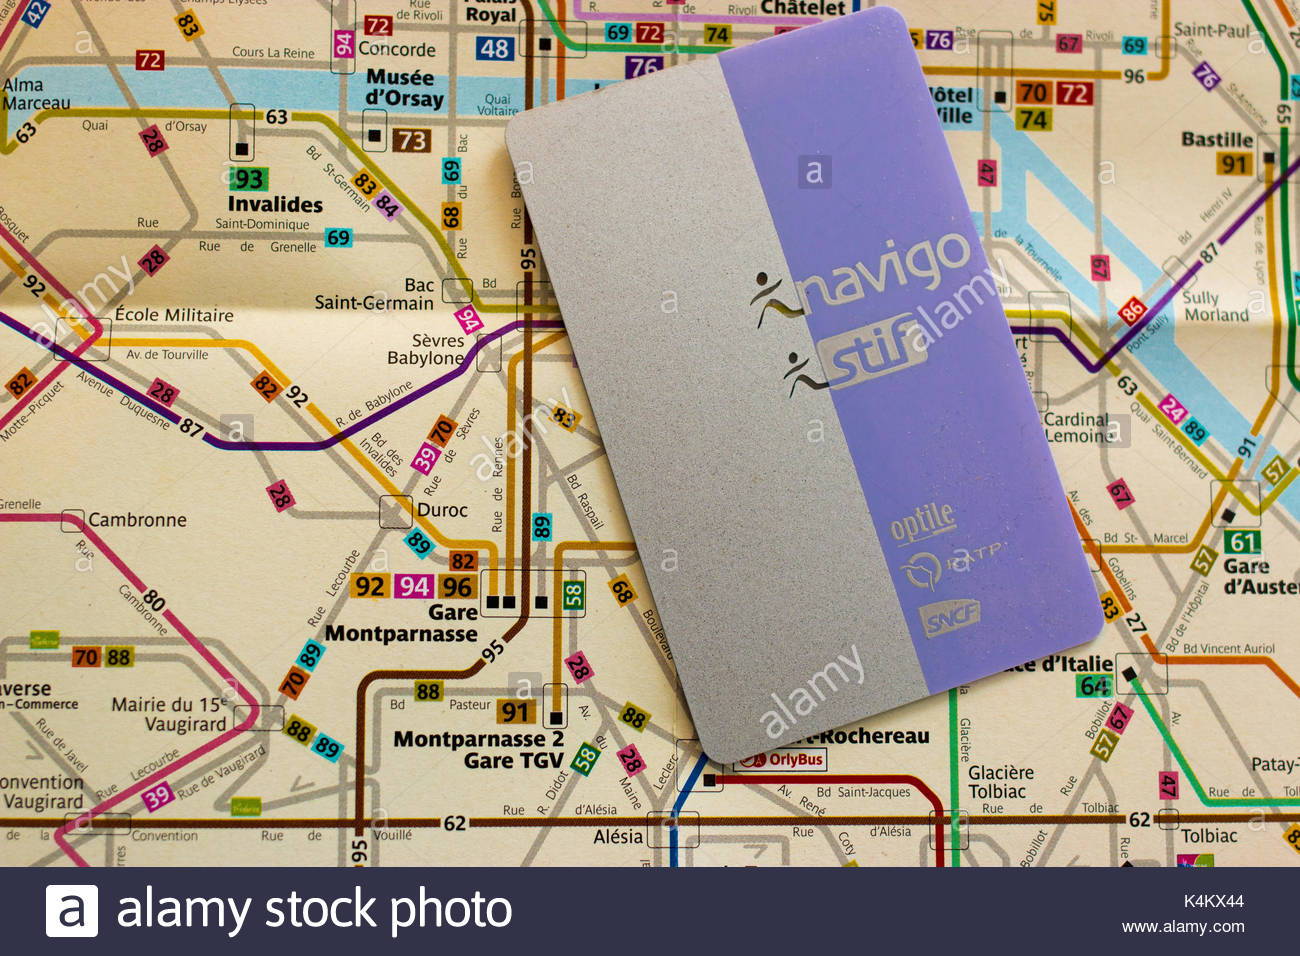 France Subway Map.Paris France 10 August 2017 Transportation Subscription Card